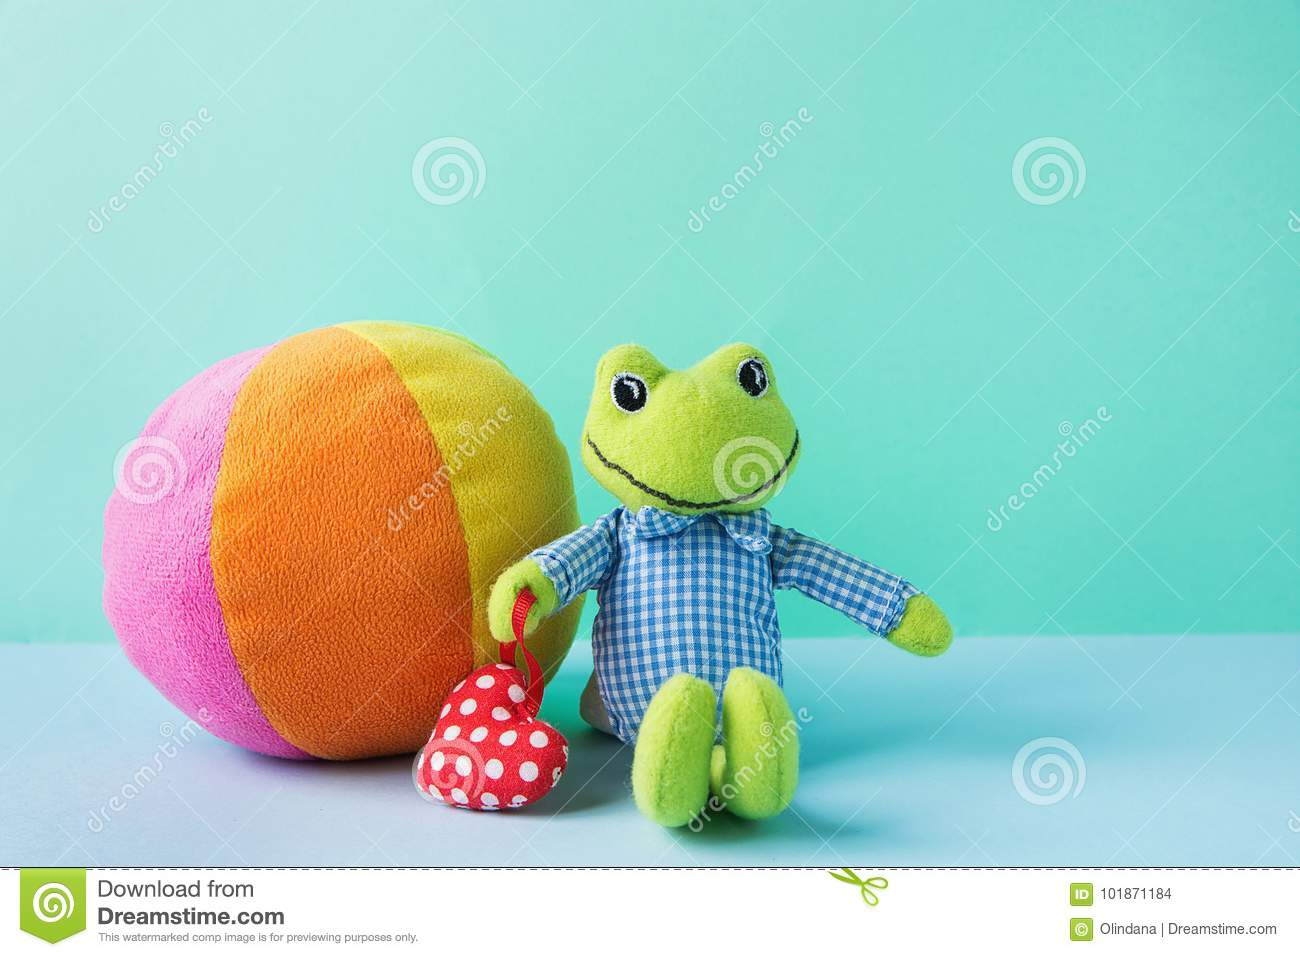 Kids Toys Small Plush Frog Holding Red Heart Multicolored Textile Soft Ball on Blue Green Background. Banner Placeholder Charity